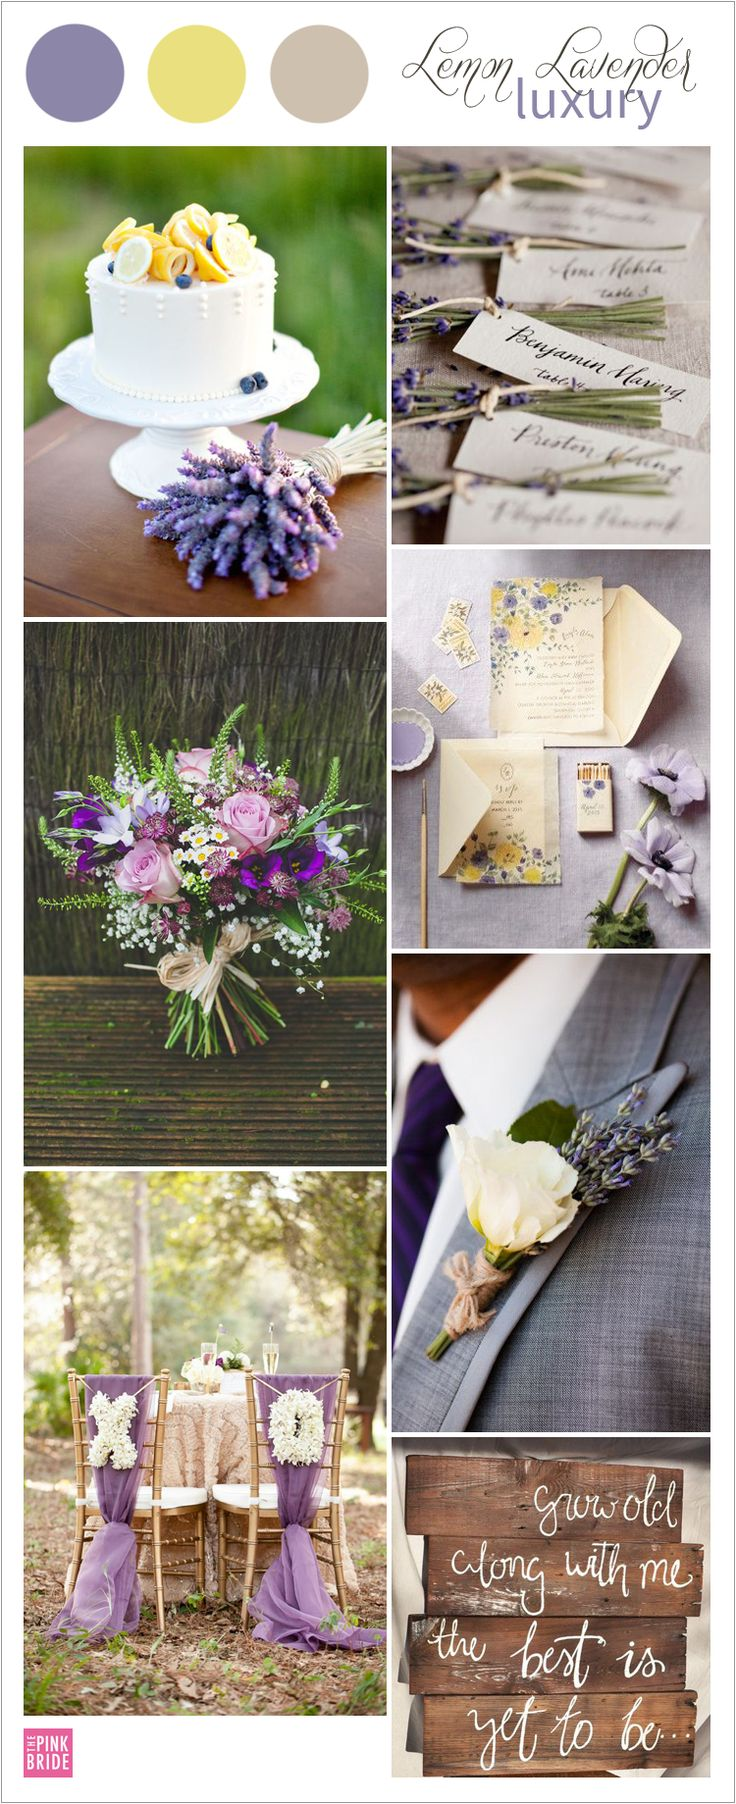 Lemon Lavender yellow and purple wedding color board with luxurious details   The Pink Bride www.thepinkbride.com